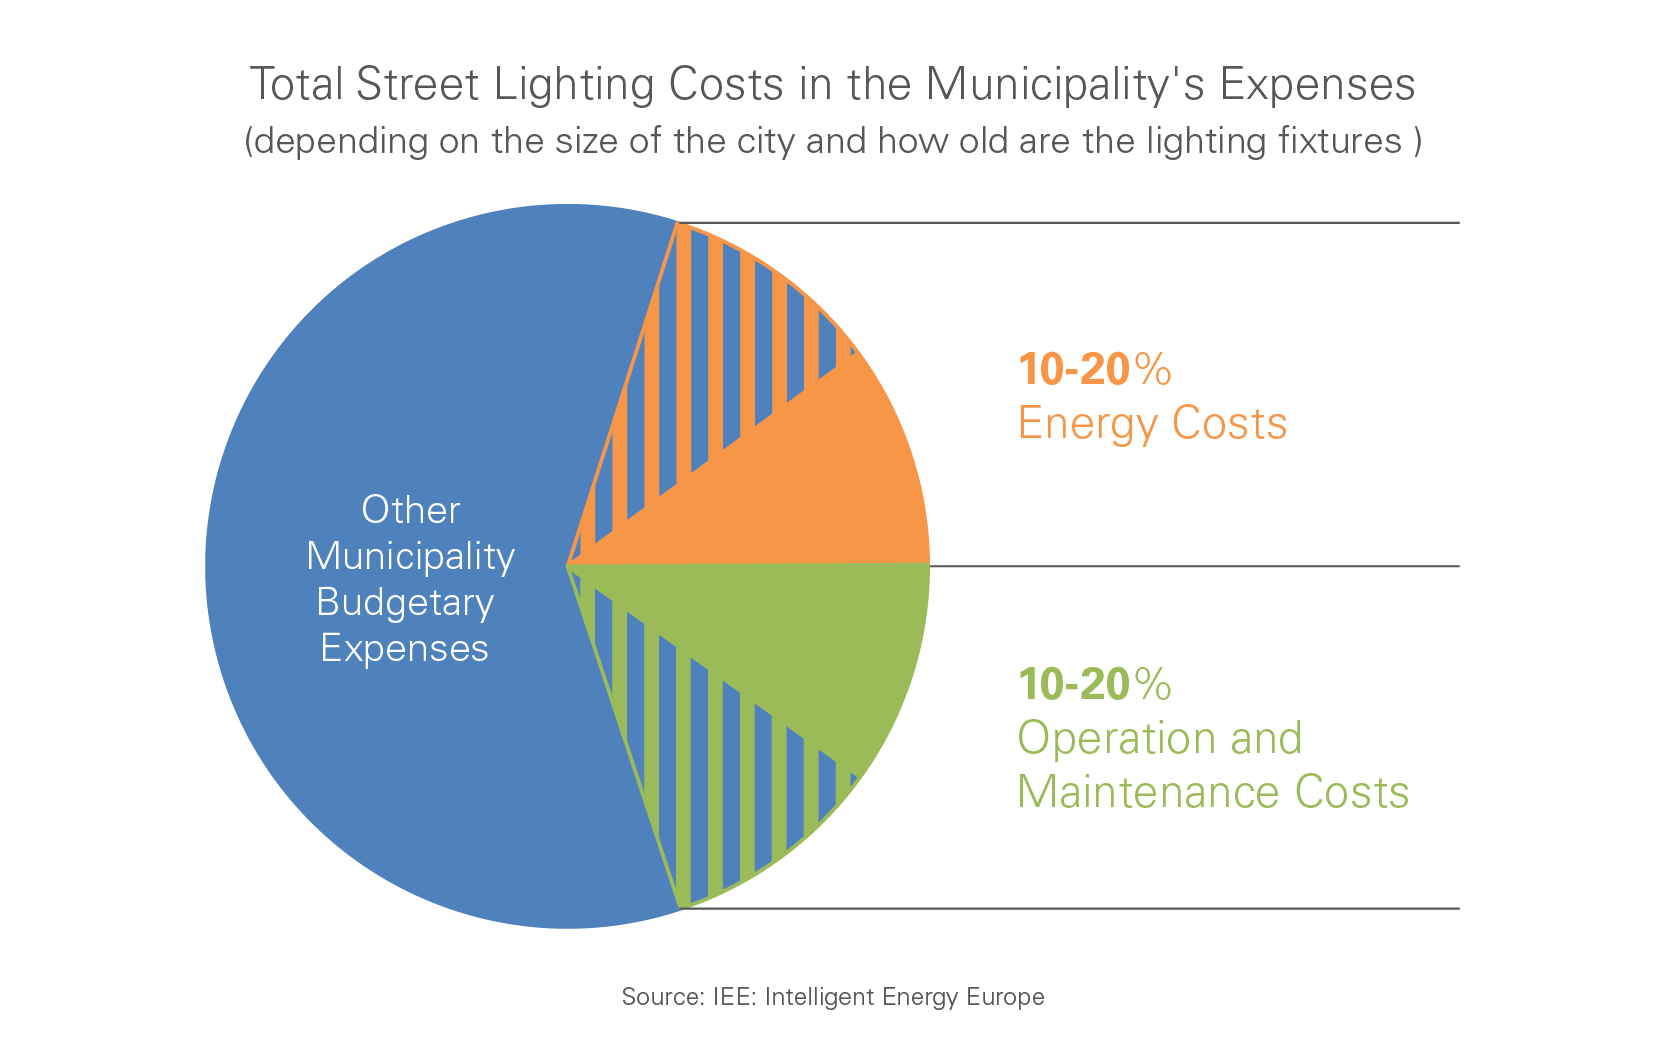 Total street lighting costs in municipality's expenses